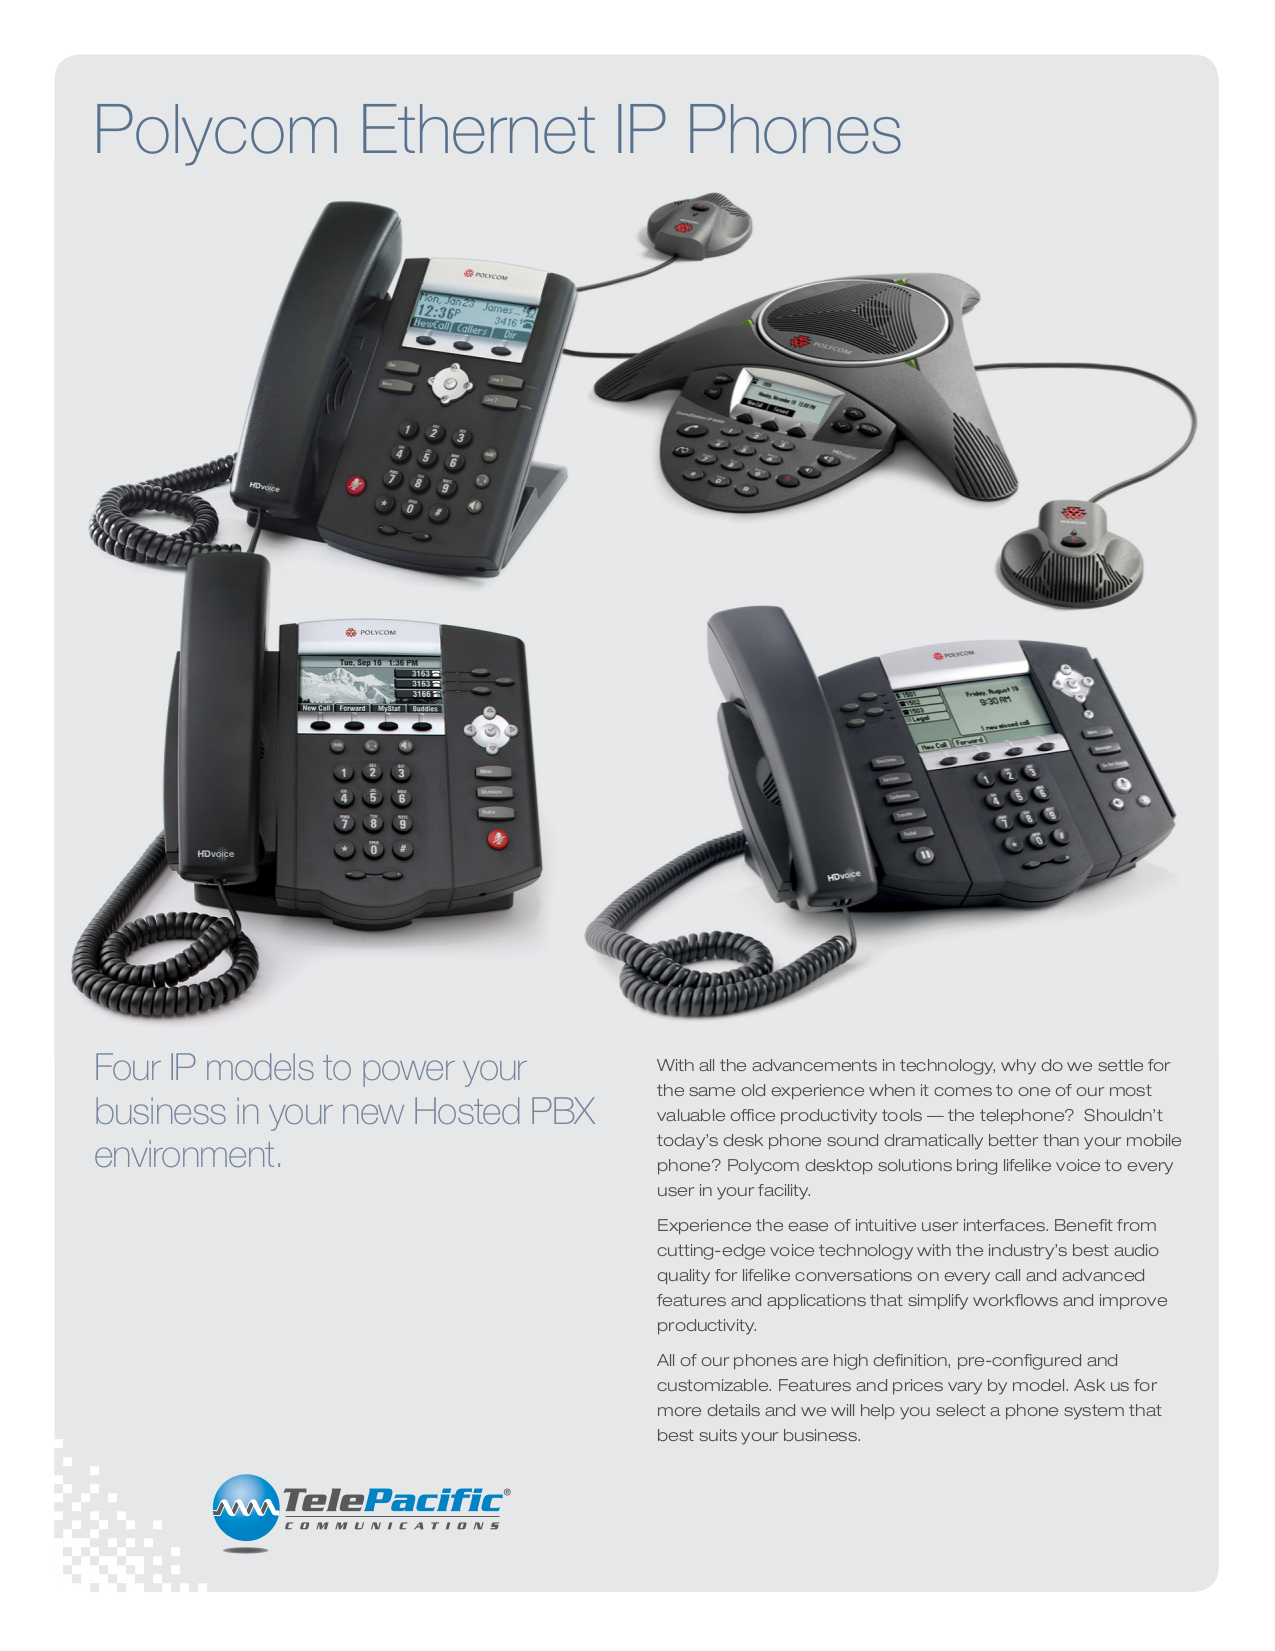 Check your voicemail using polycom soundpoint ip 335.